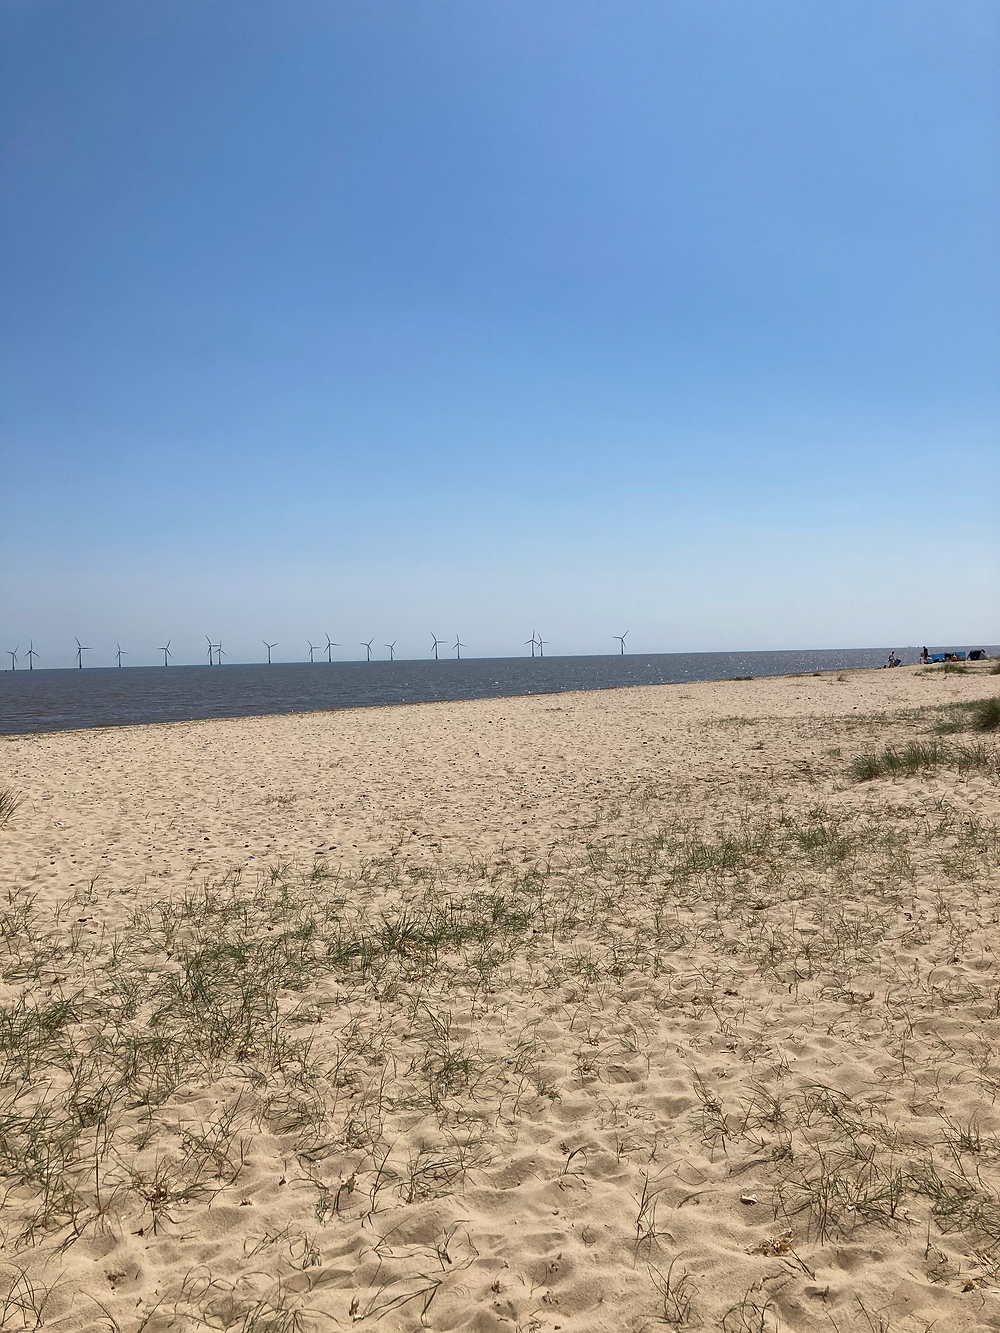 Beach with wind farm in background.